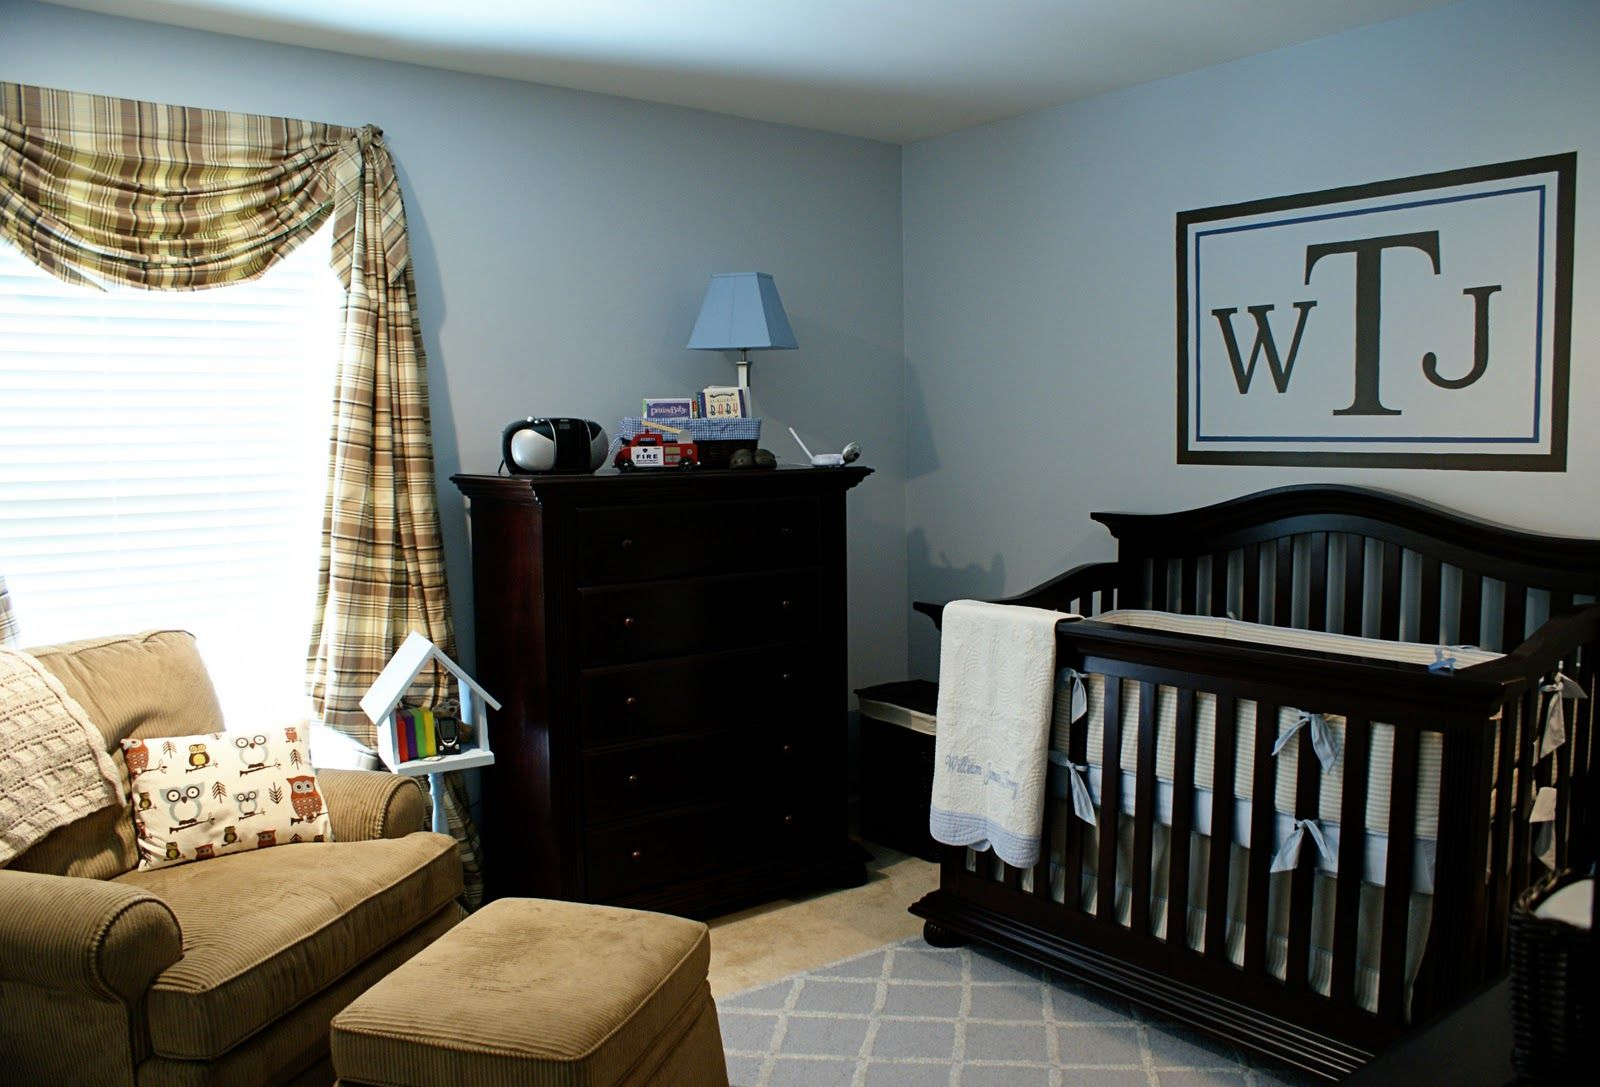 Room nursery on pinterest babies nursery nurseries and baby boy r - Bedroom design for baby boy ...